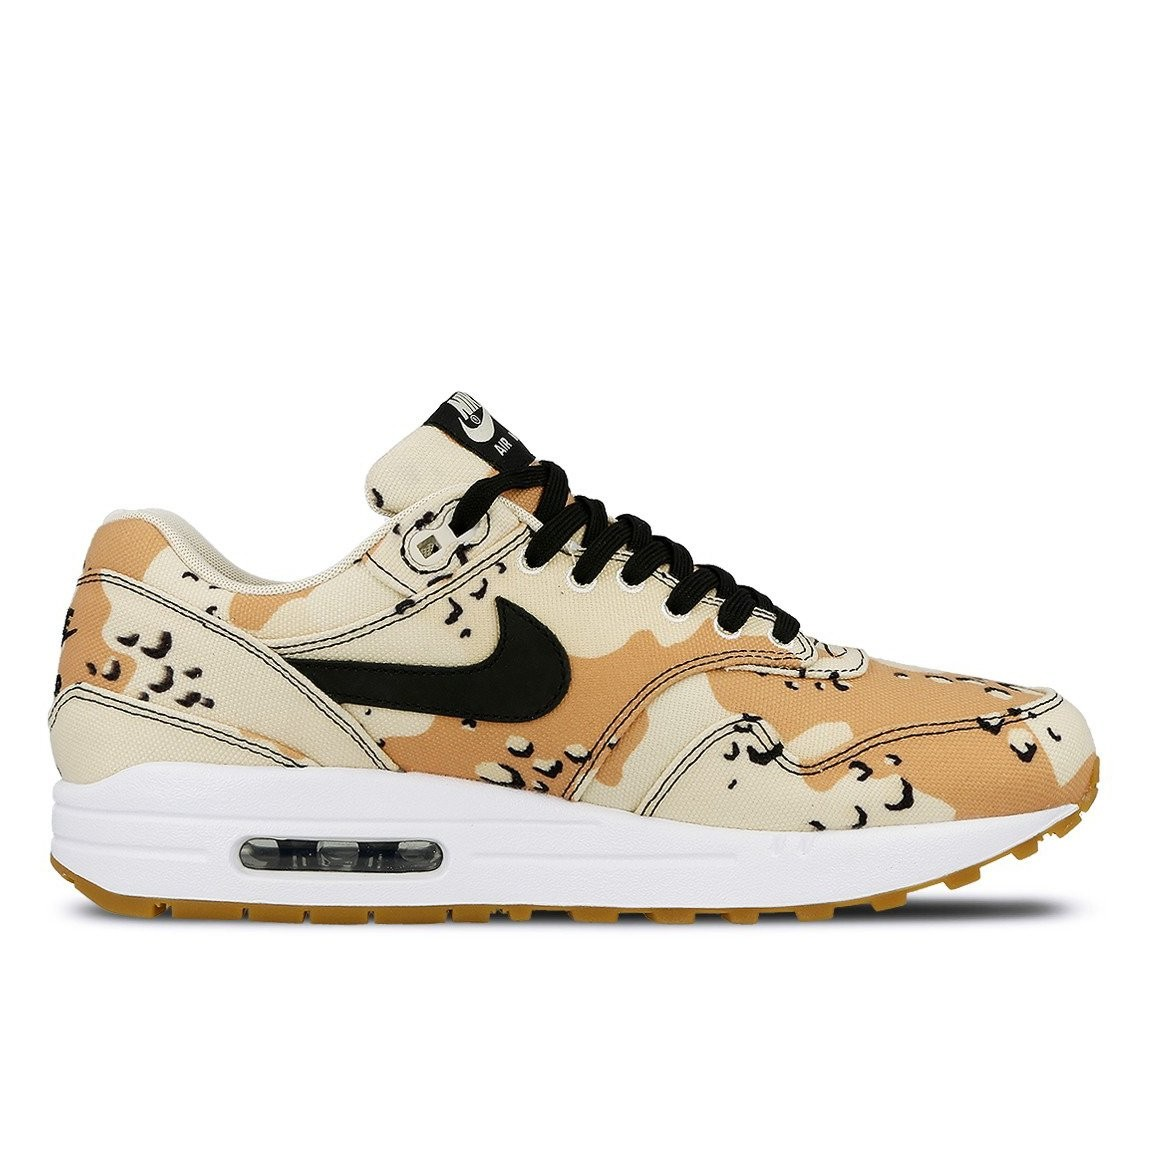 875844-204 Nike Air Max 1 Premium Schoenen - Beach/Zwart-Praline-Light Cream